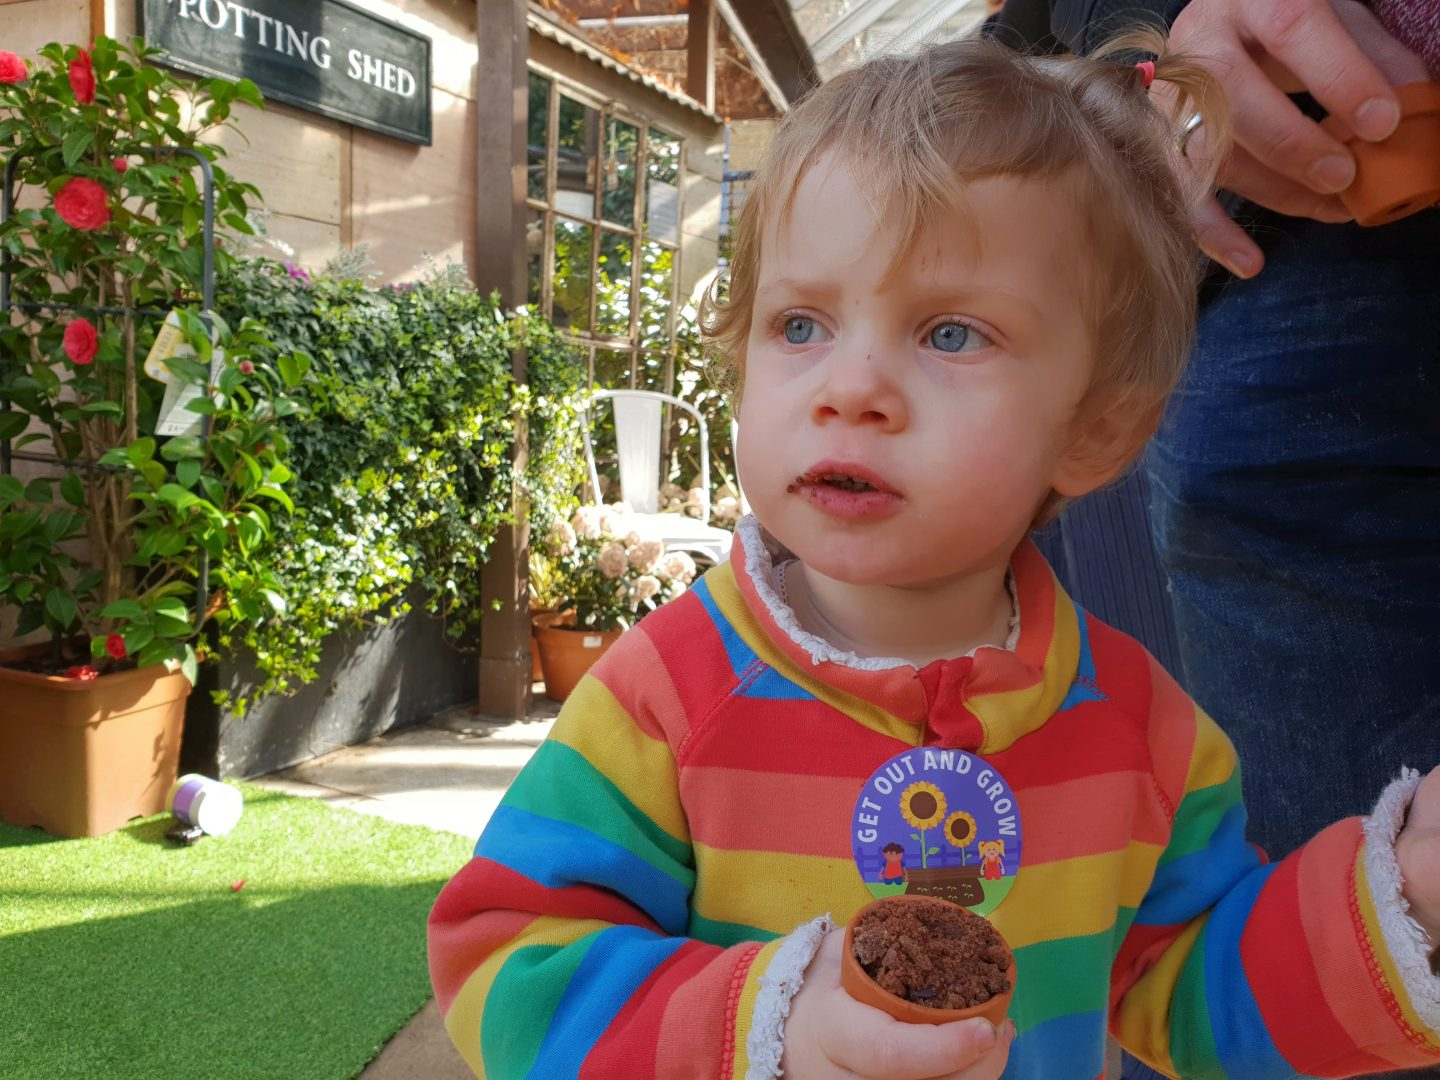 Toddler with plant pot cake at Get Out and Grow launch